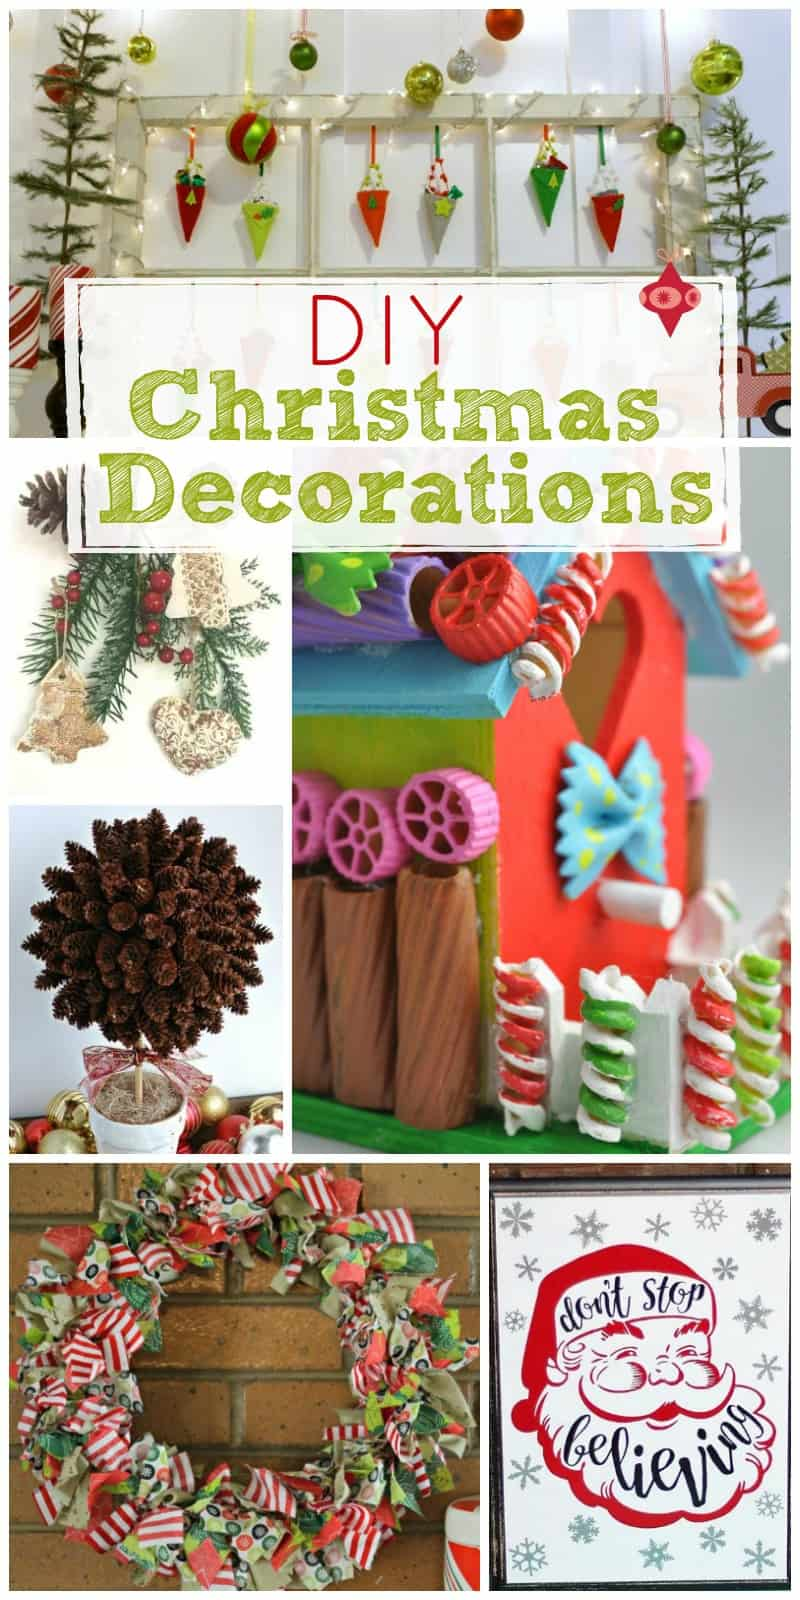 Create unique Christmas decorations on a budget (and have fun doing it) with this list of DIY Christmas decorations - with something for everyone!